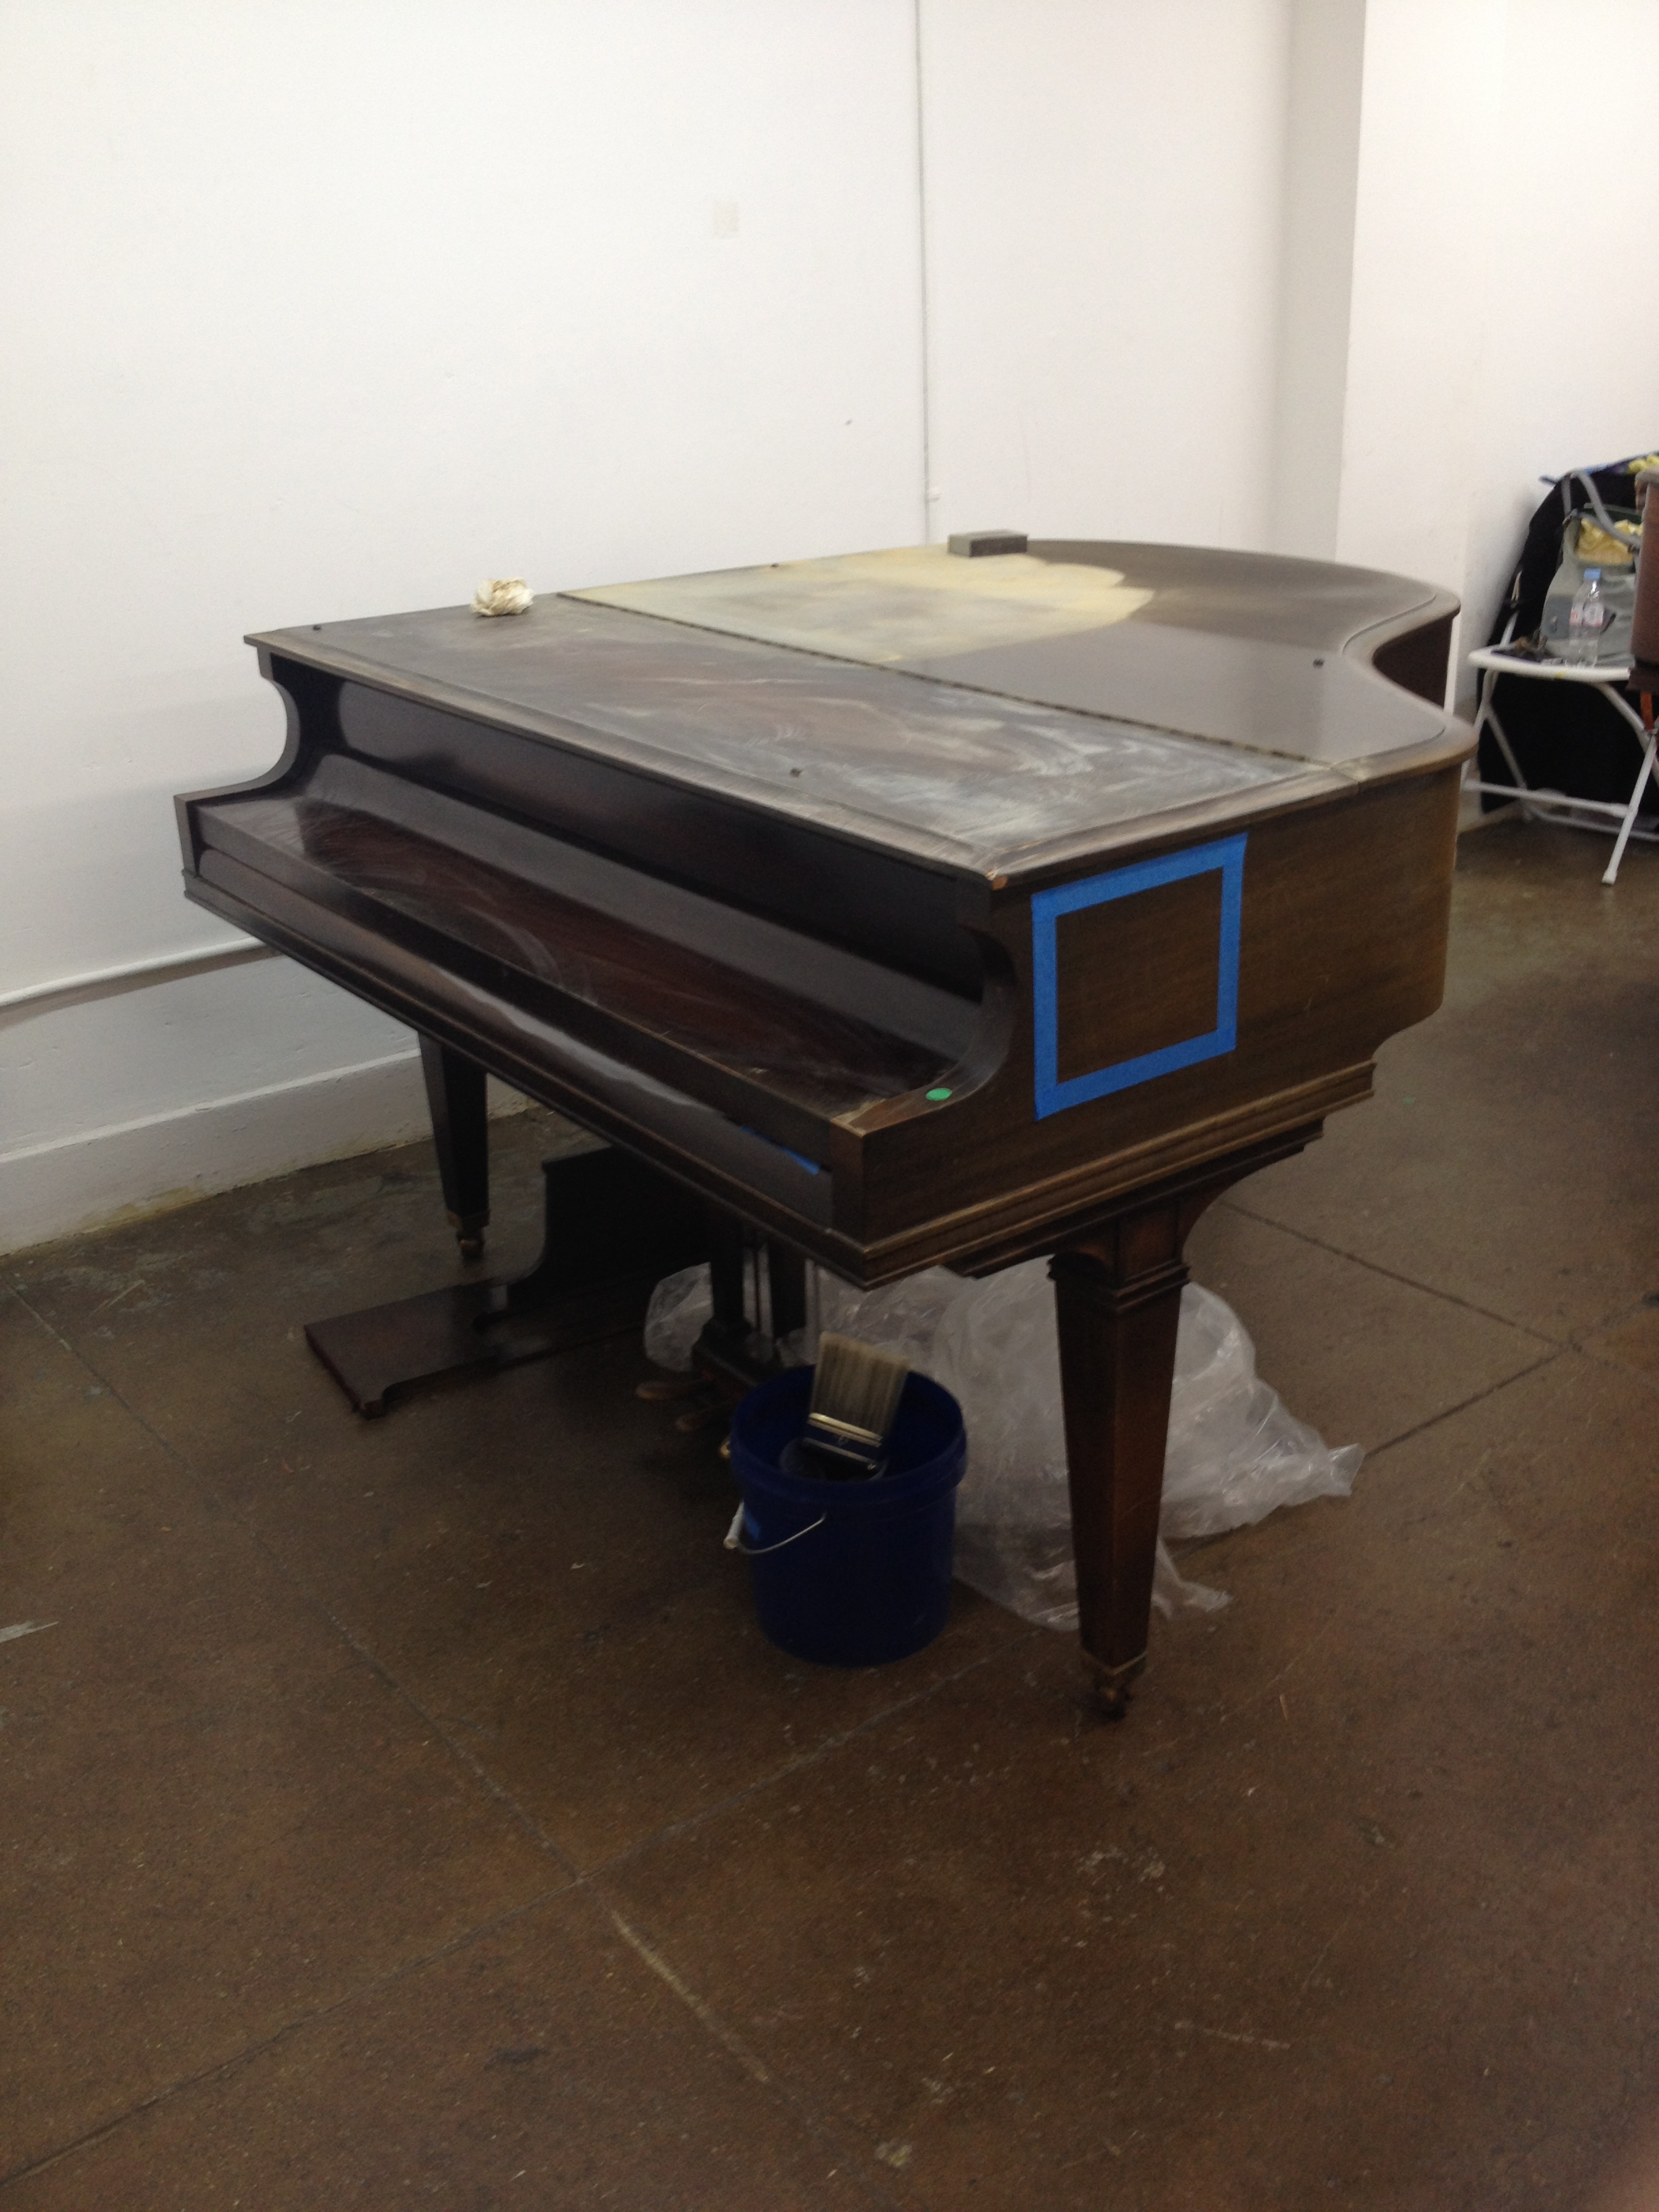 The untouched piano